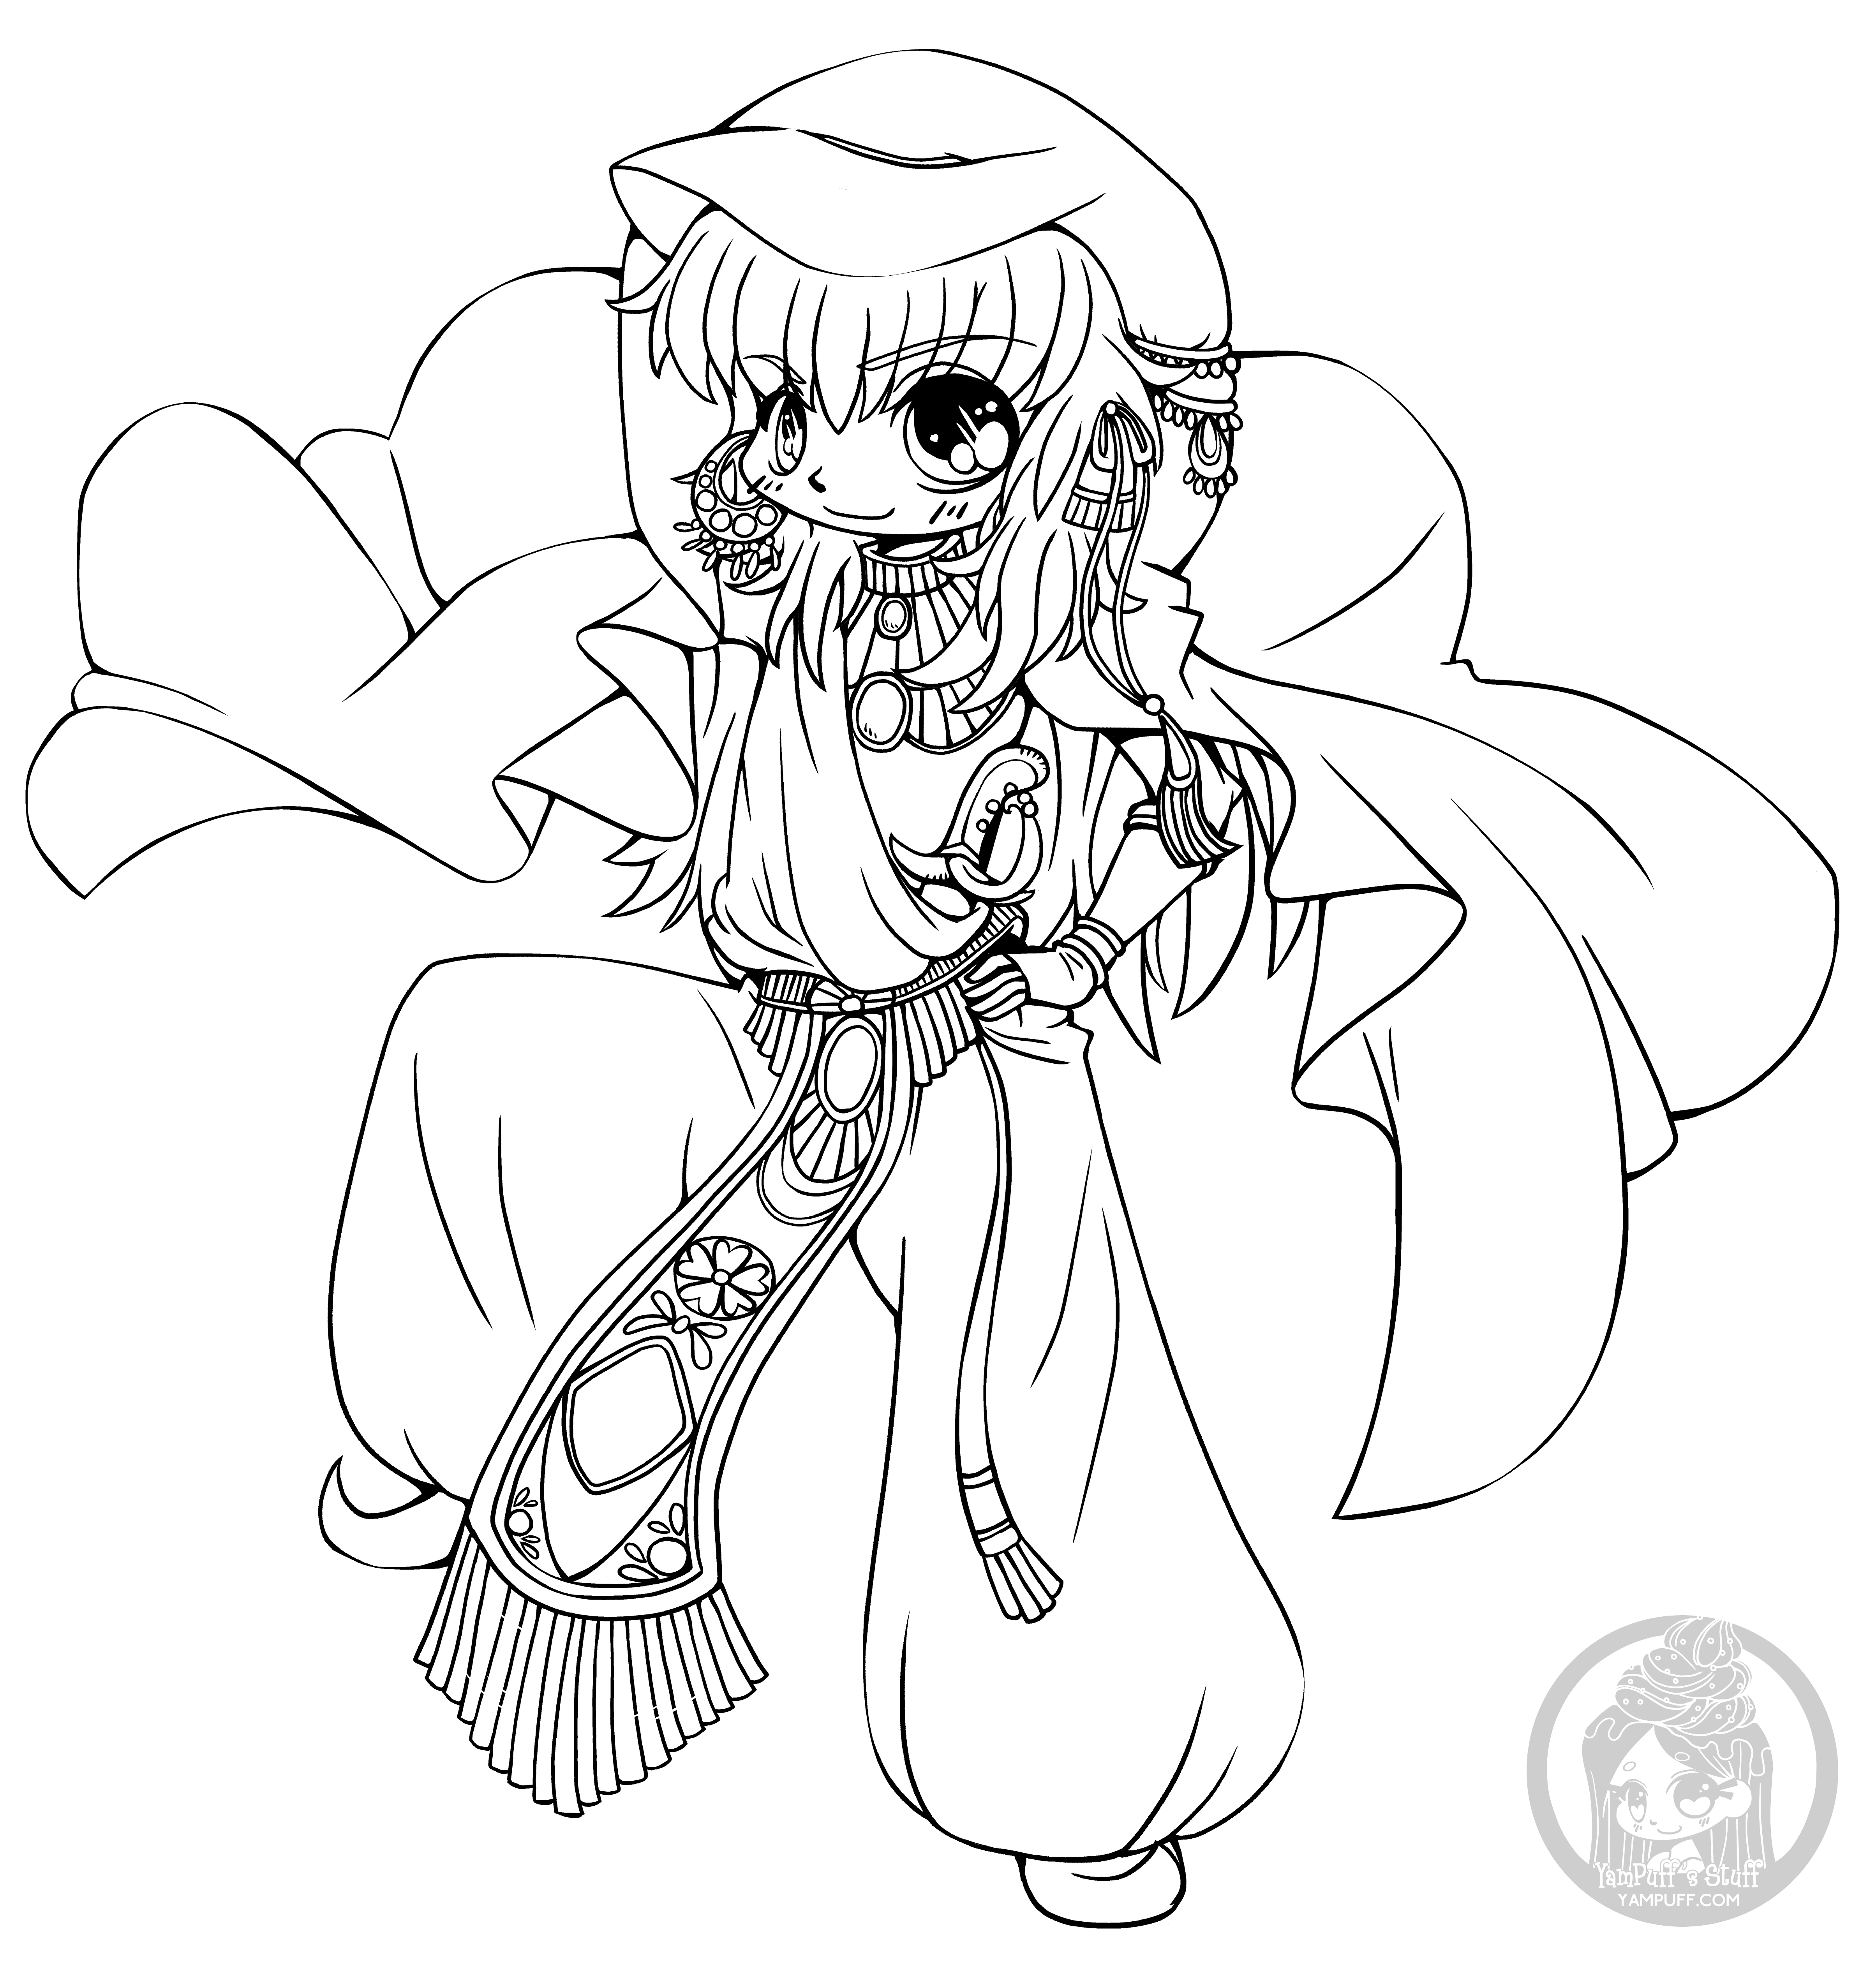 coloring pages anime chibi anime chibi coloring pages coloring pages to download coloring chibi anime pages